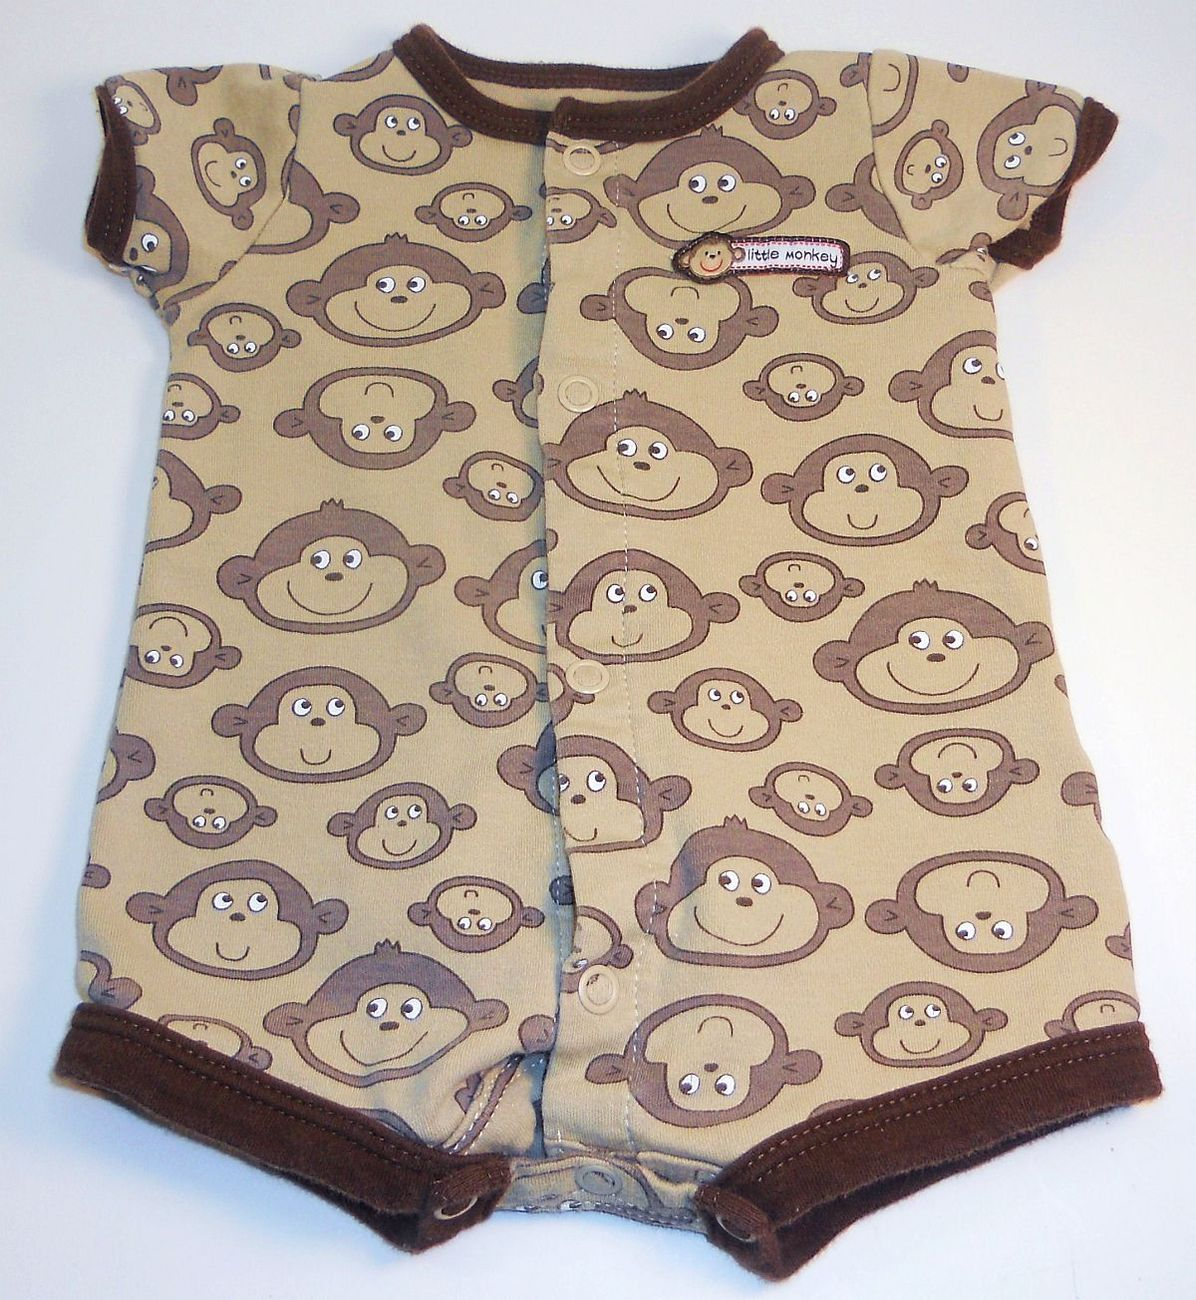 Image 1 of Carters Little Monkey onesie footie pants outfit New Born